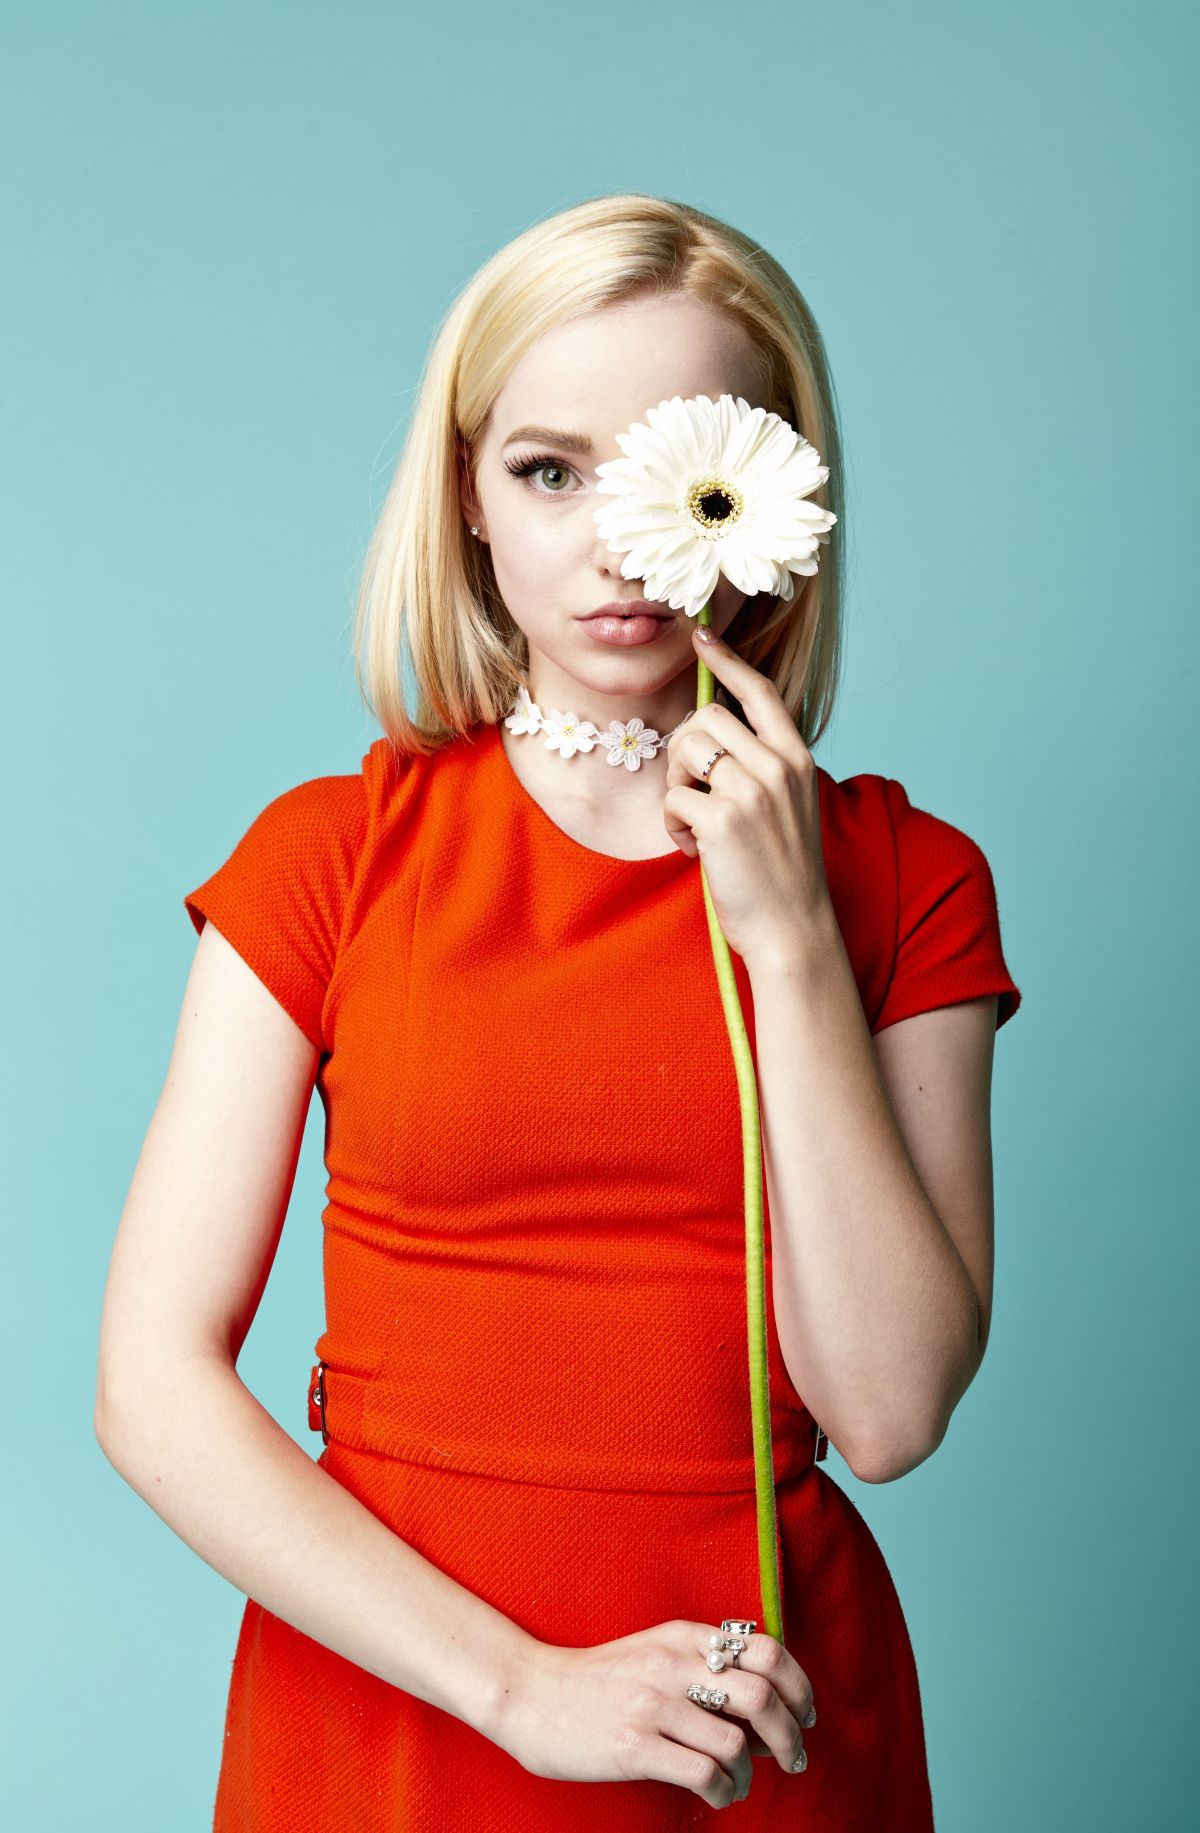 DOVE CAMERON in Tigerbeat Magazine, May 2016 Issue